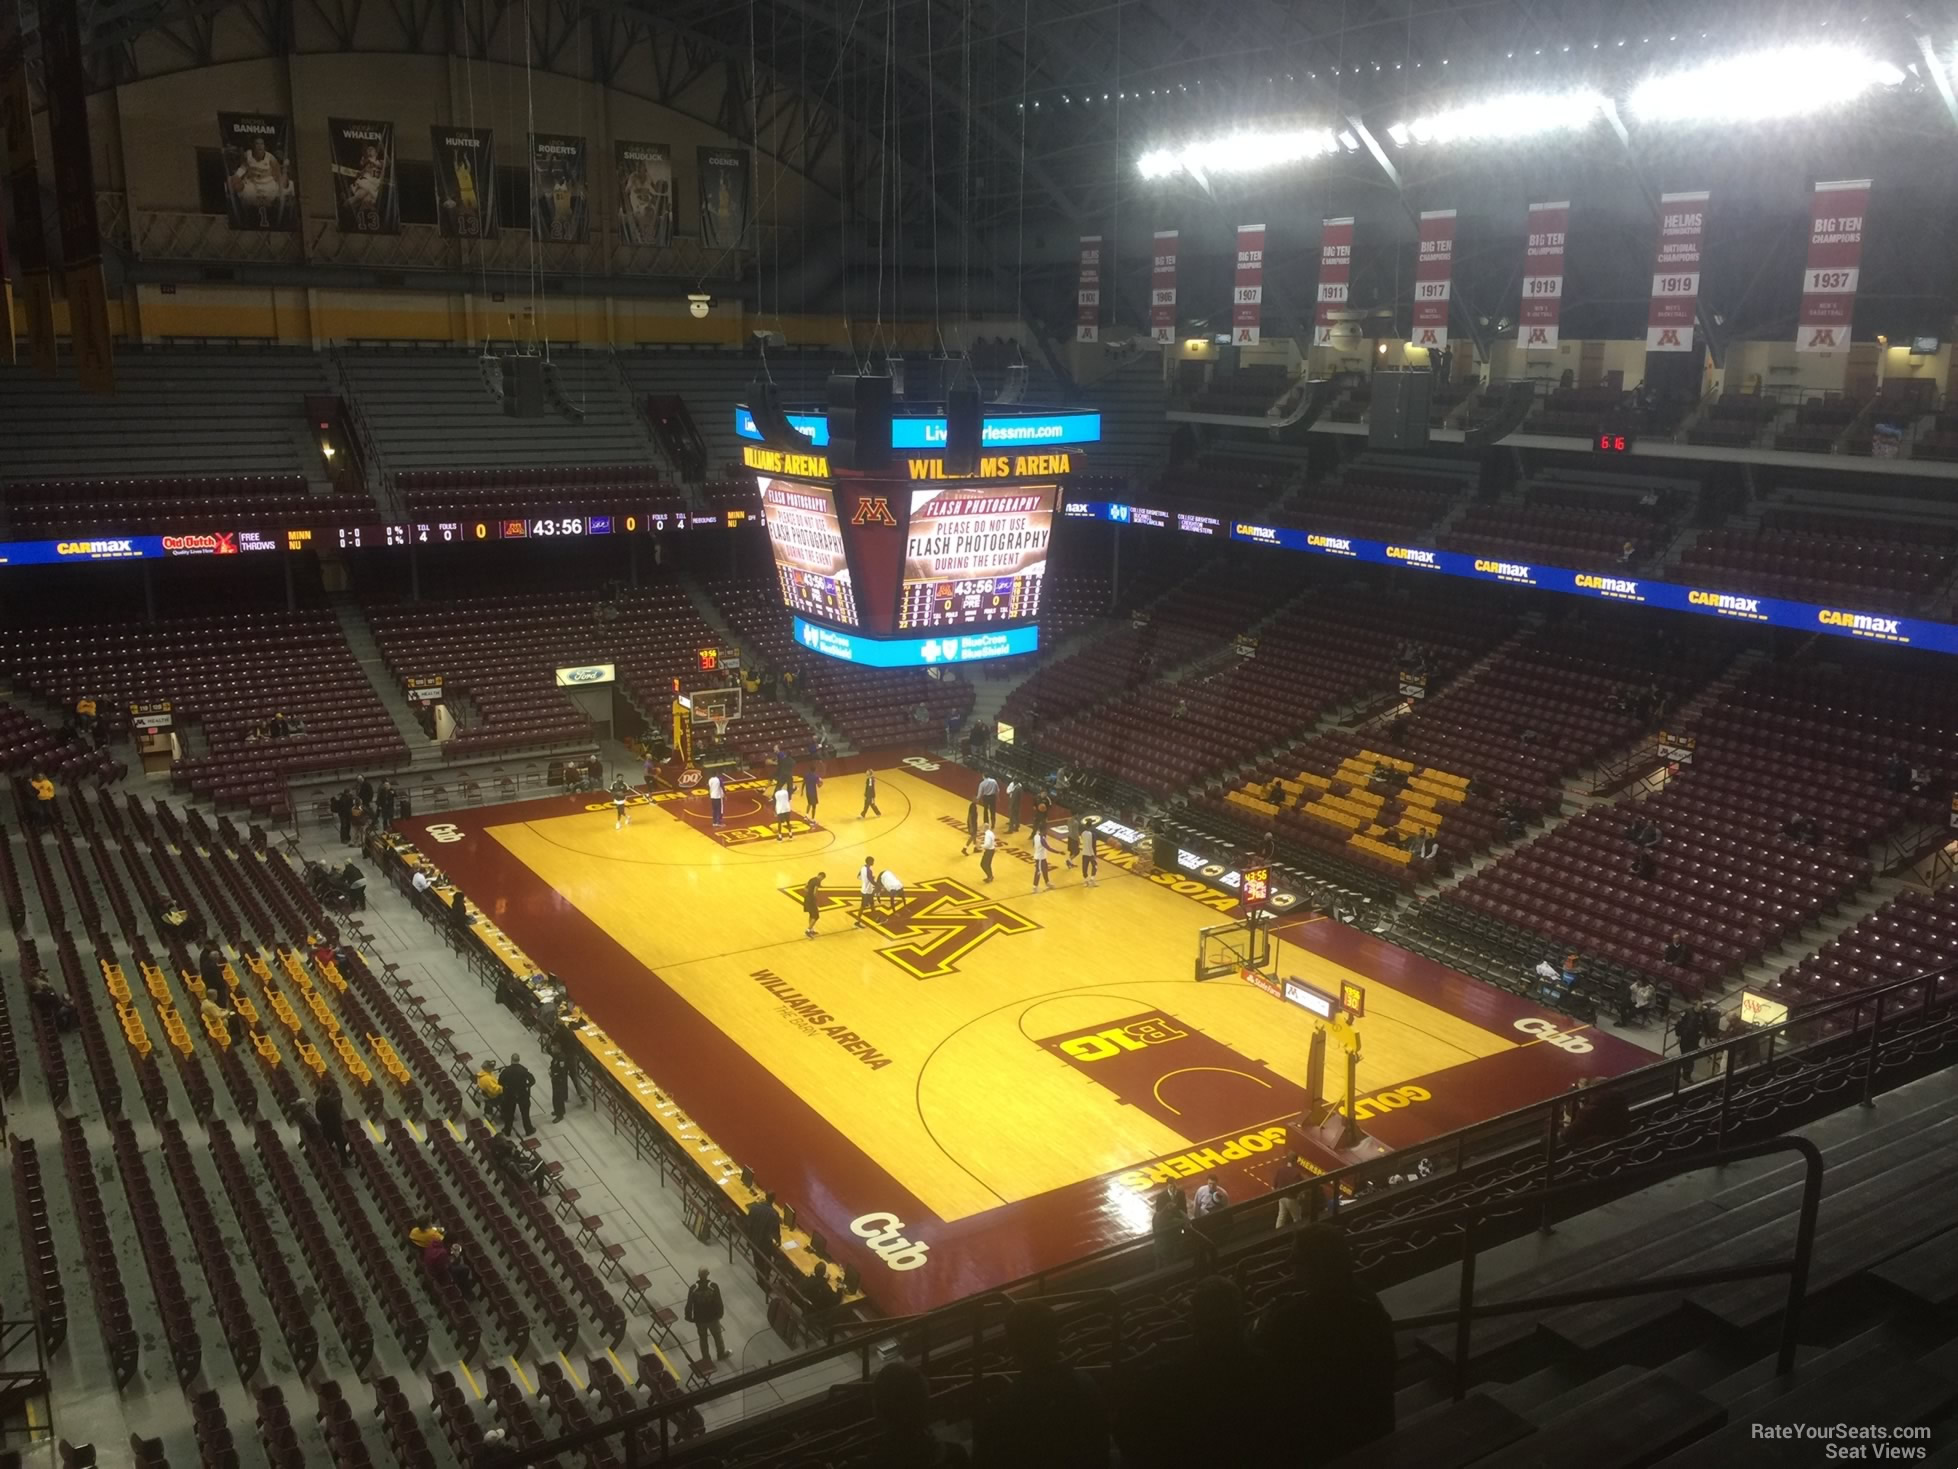 Section 215 seat view